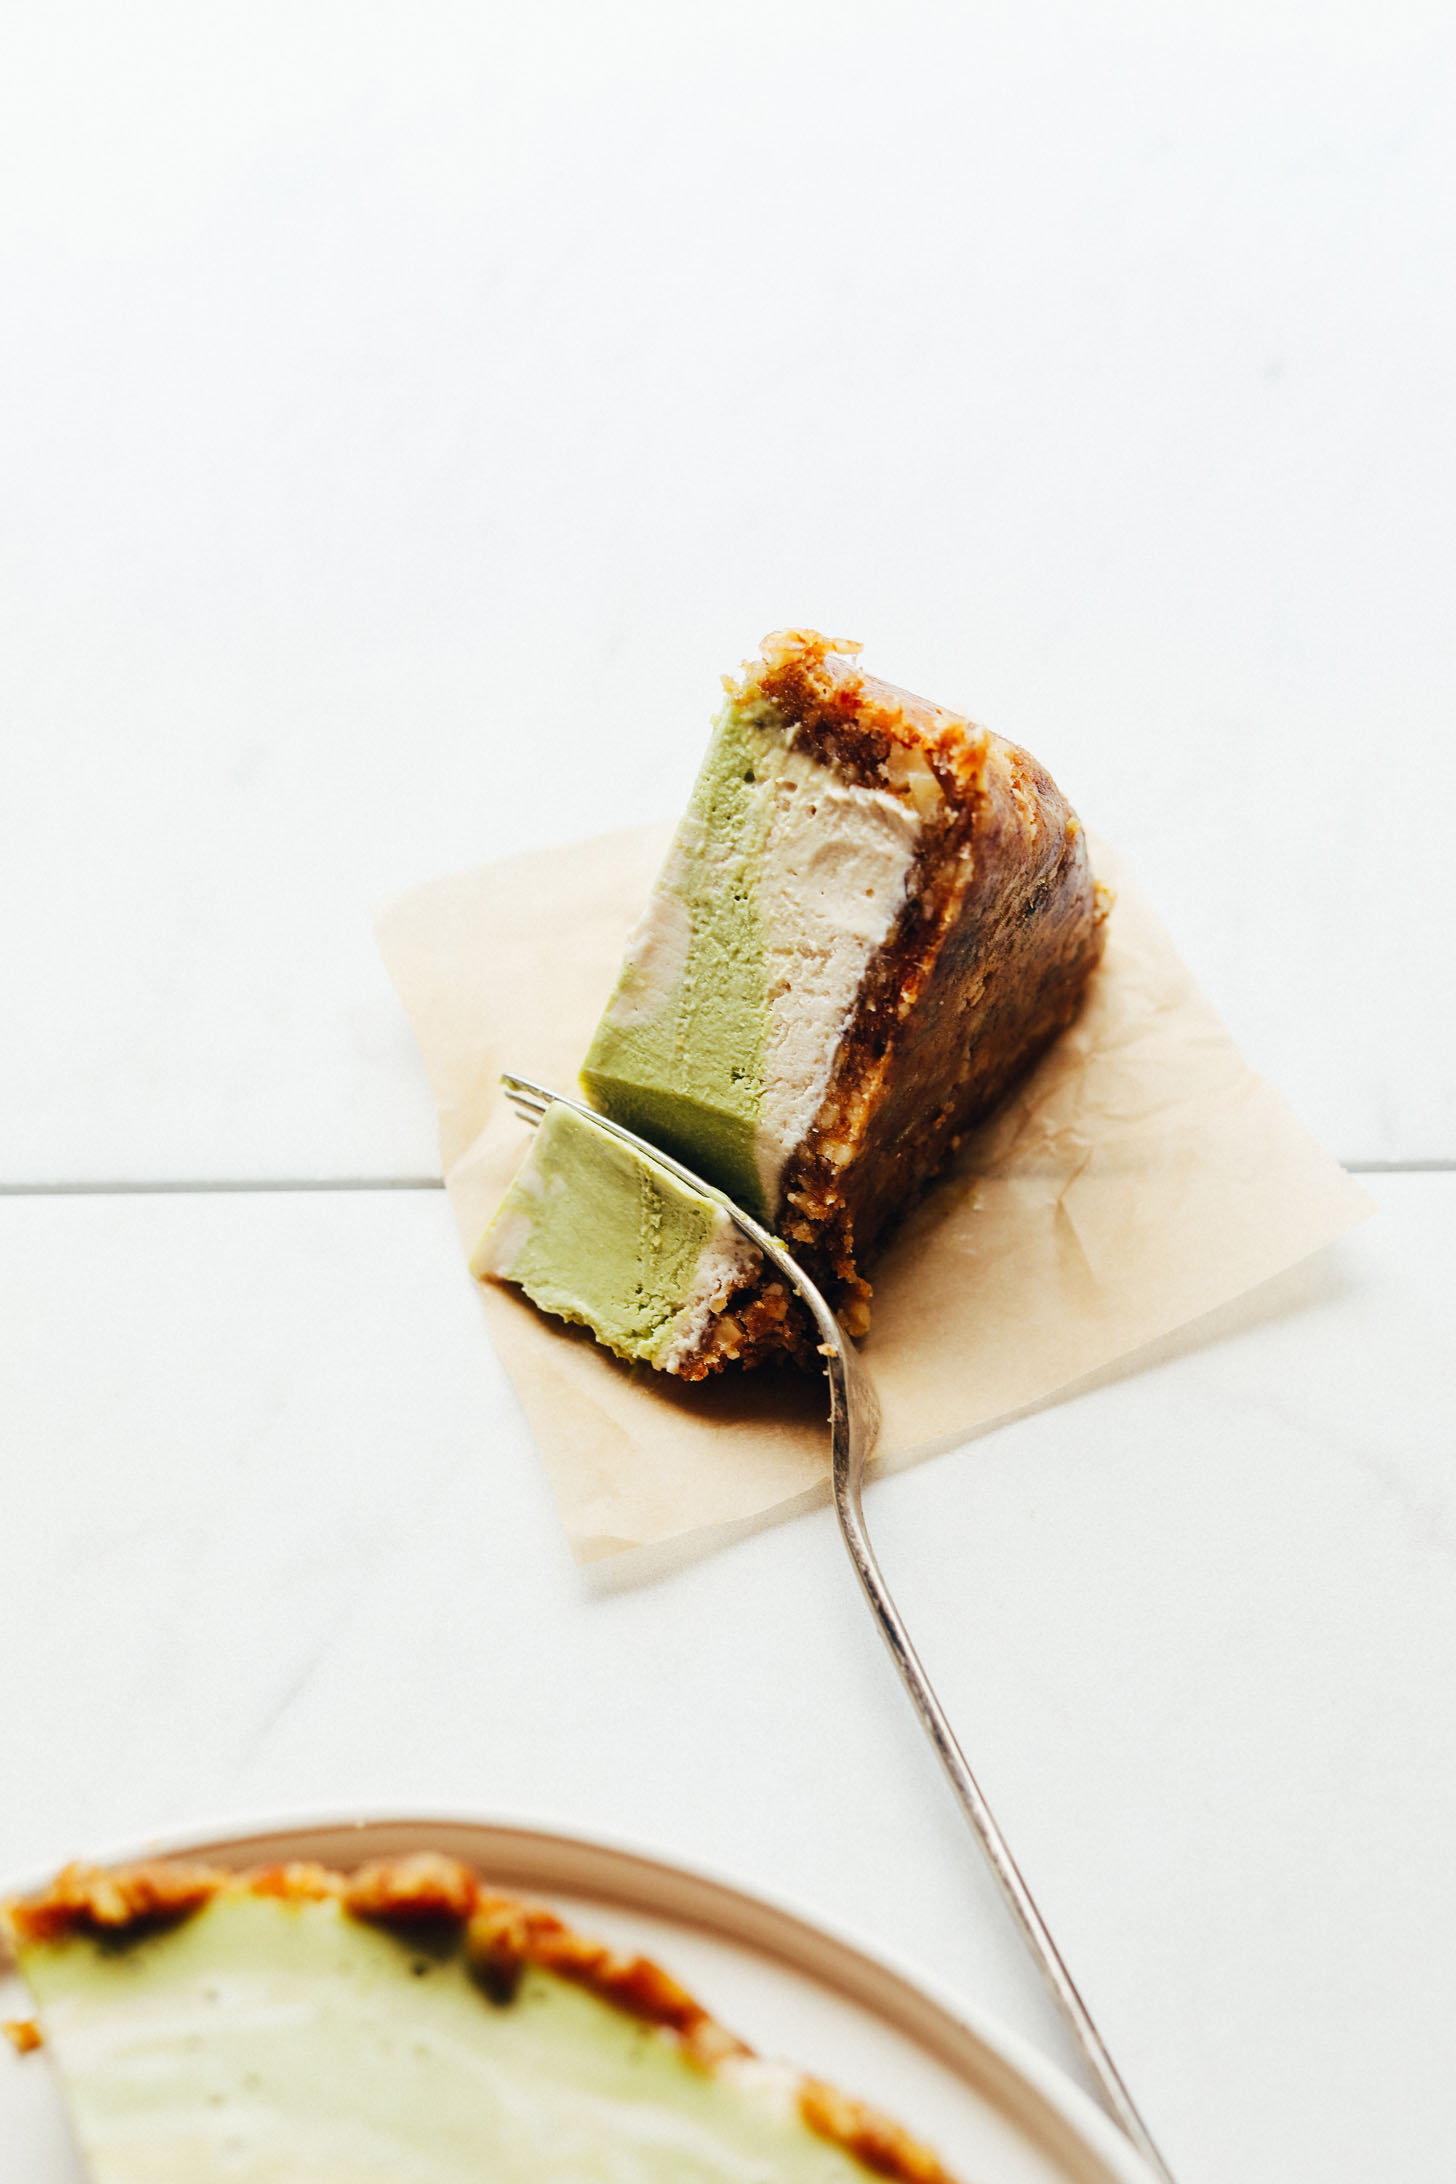 Cutting into a slice of this gorgeous two-tone Matcha Swirl Cheesecake